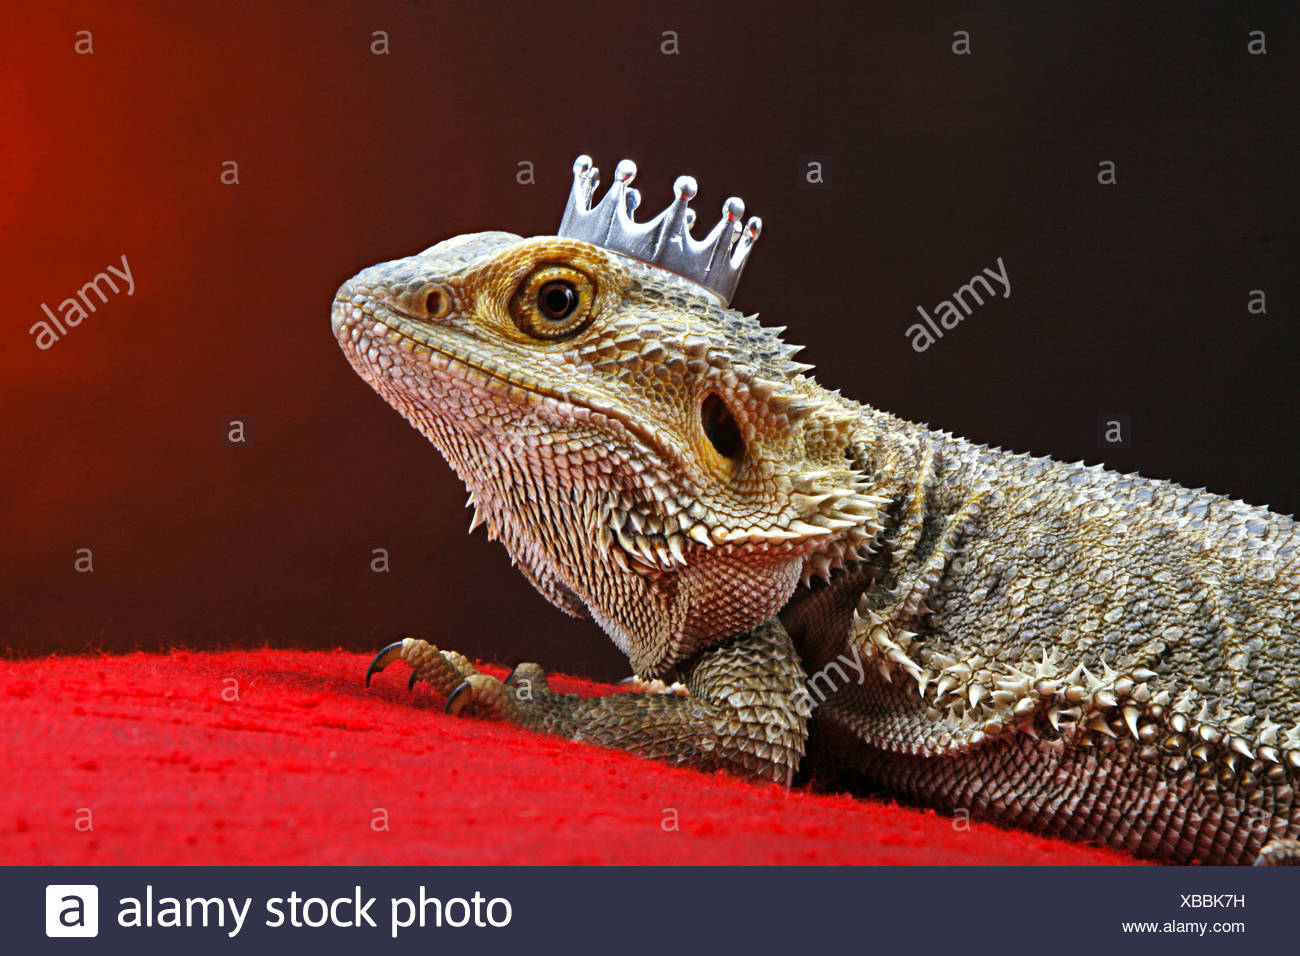 Central Bearded Dragon with crown - Stock Image